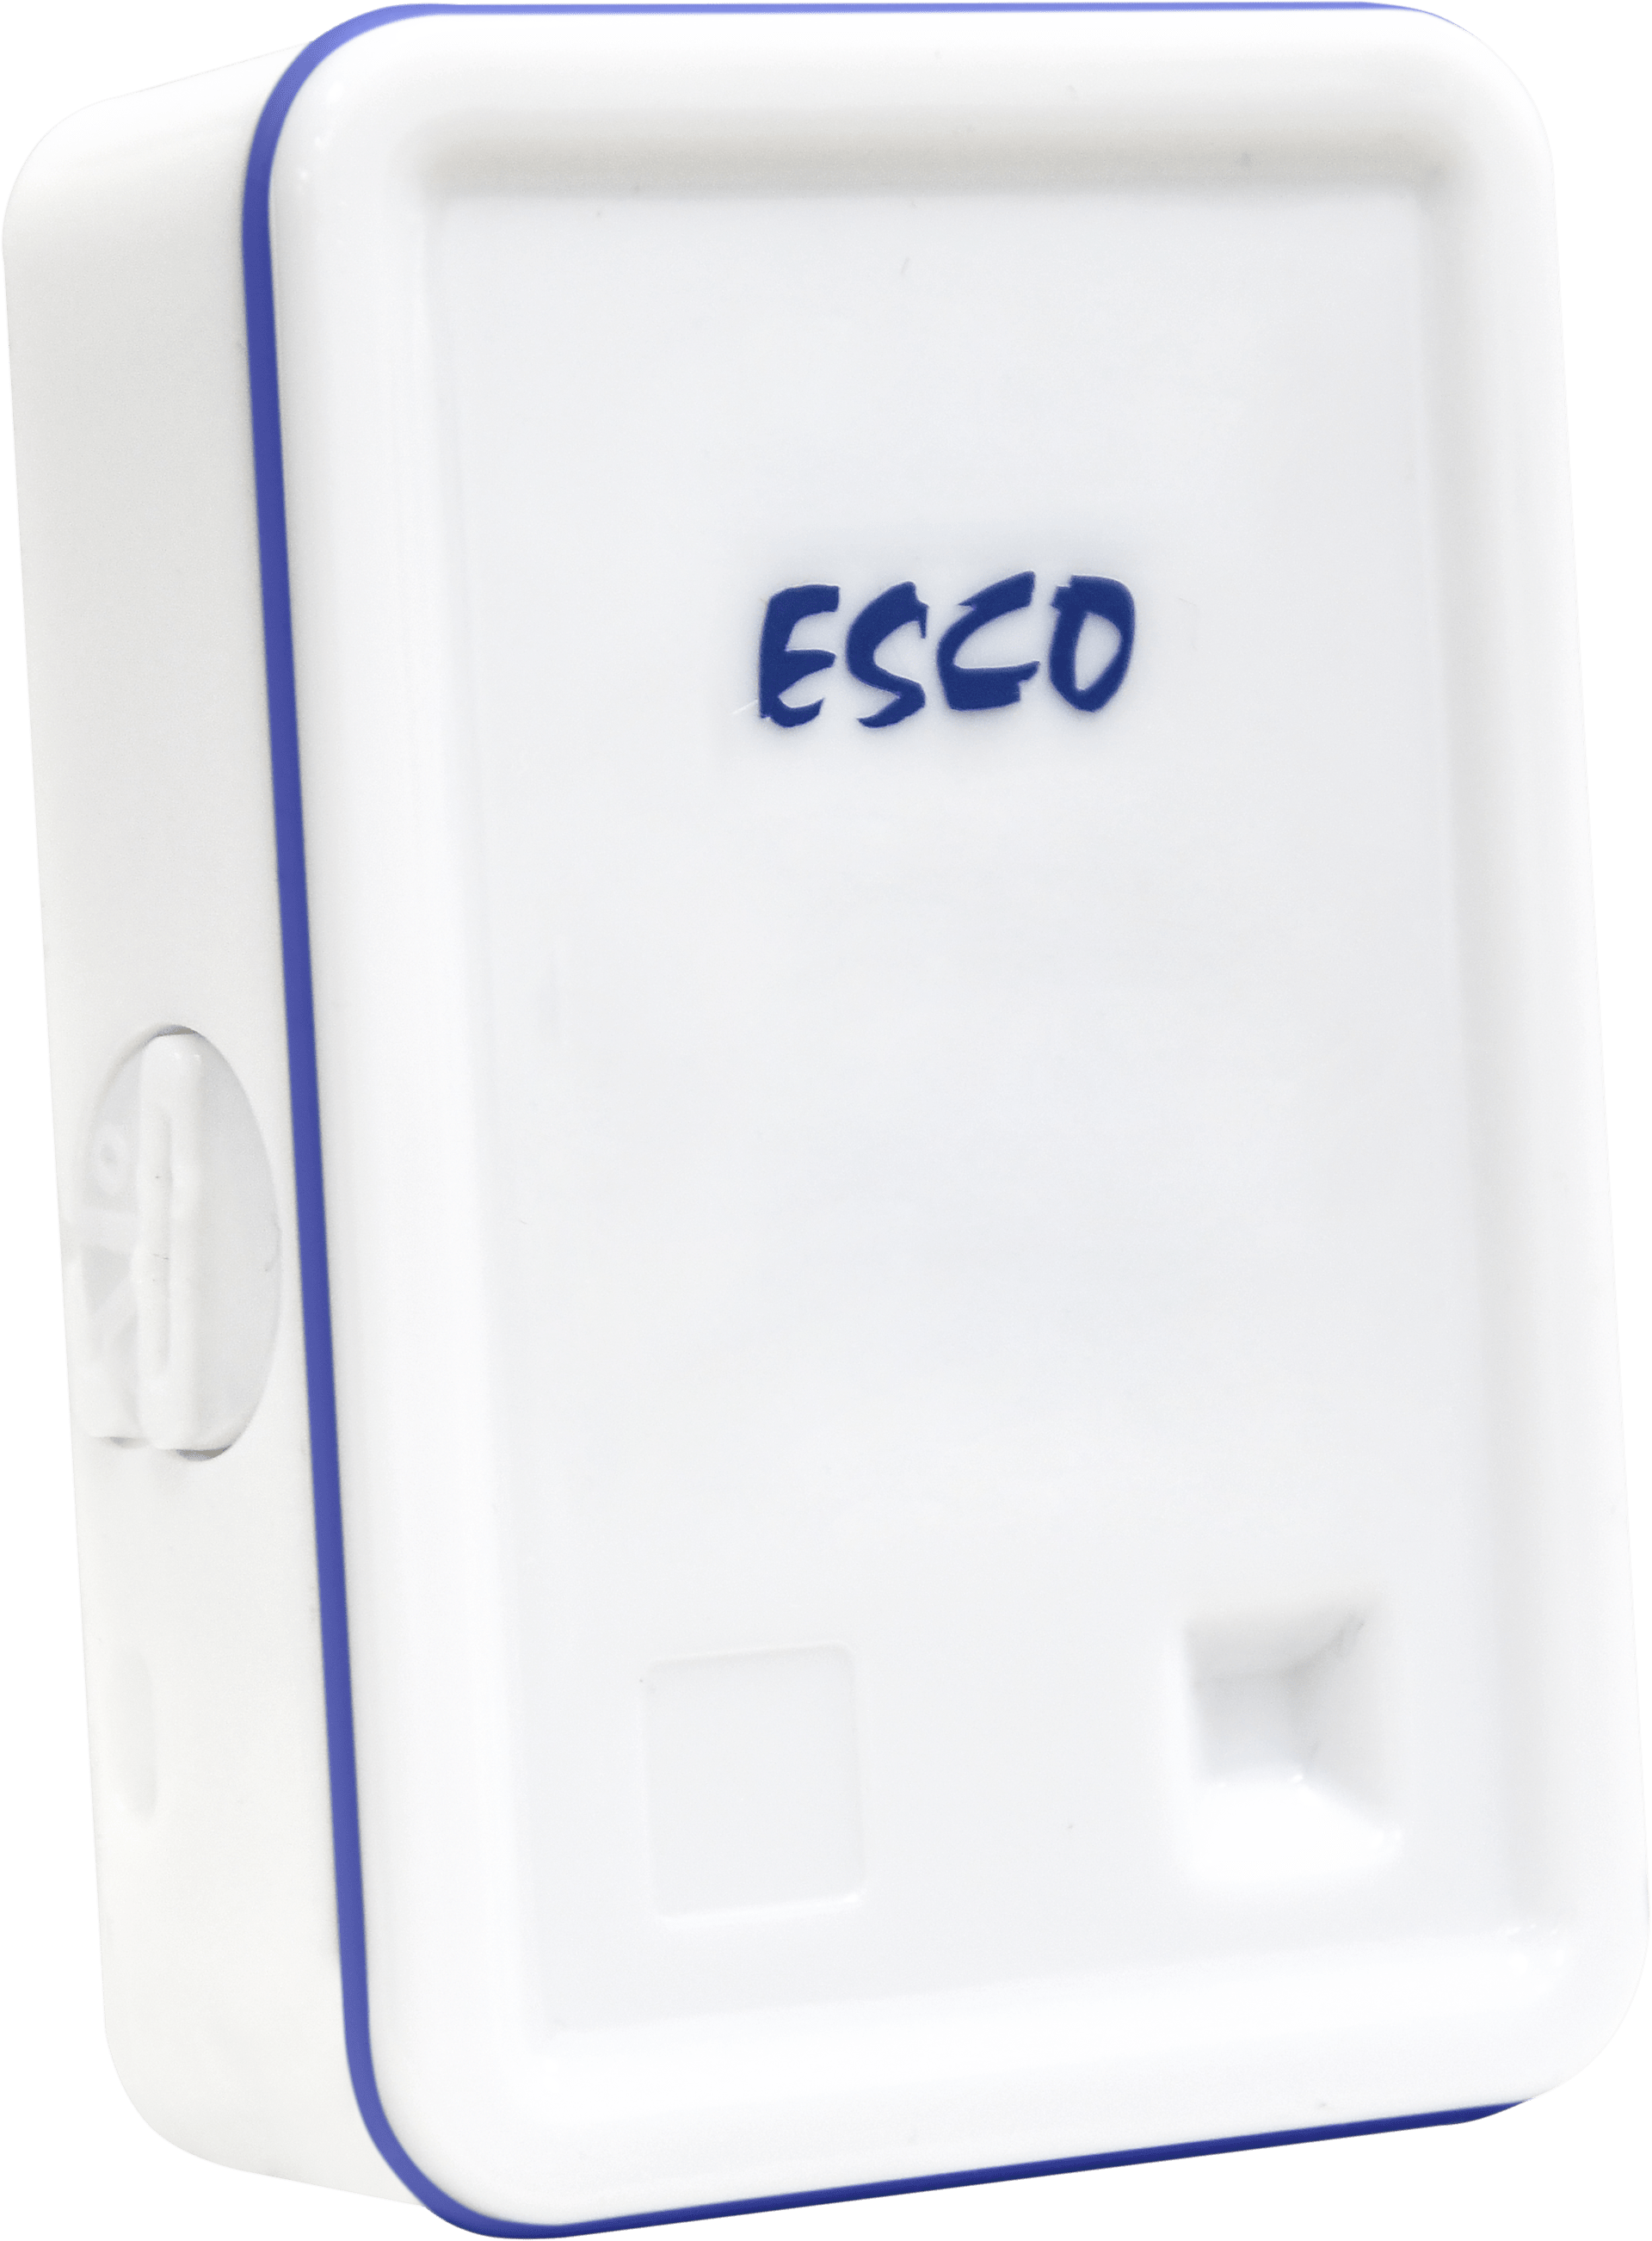 Esco PROtect Wireless Monitoring System